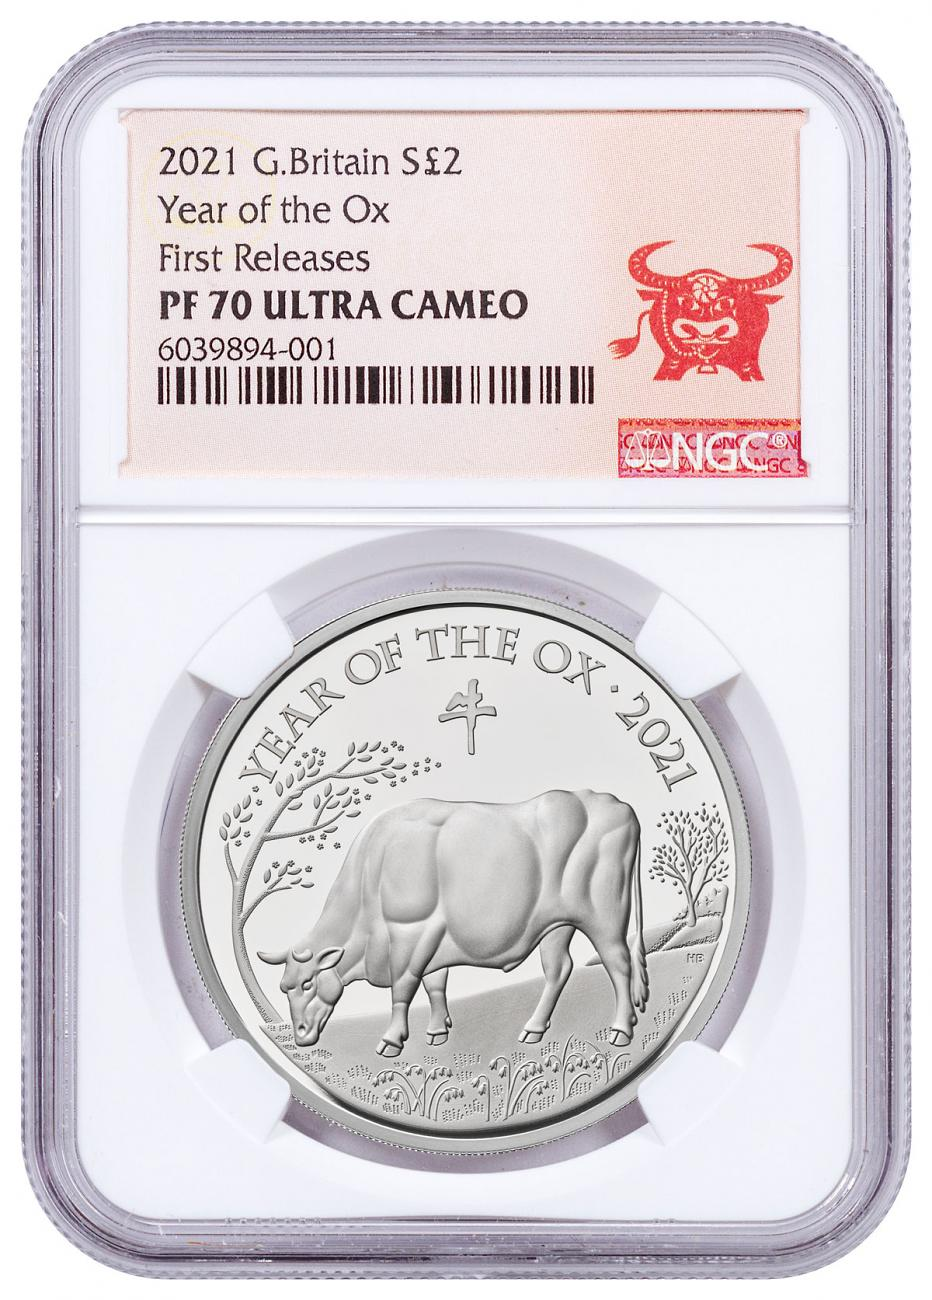 2021 Great Britain Year of the Ox 1 oz Silver Lunar Proof £2 Coin NGC PF70 UC FR OGP Year of the Ox Label